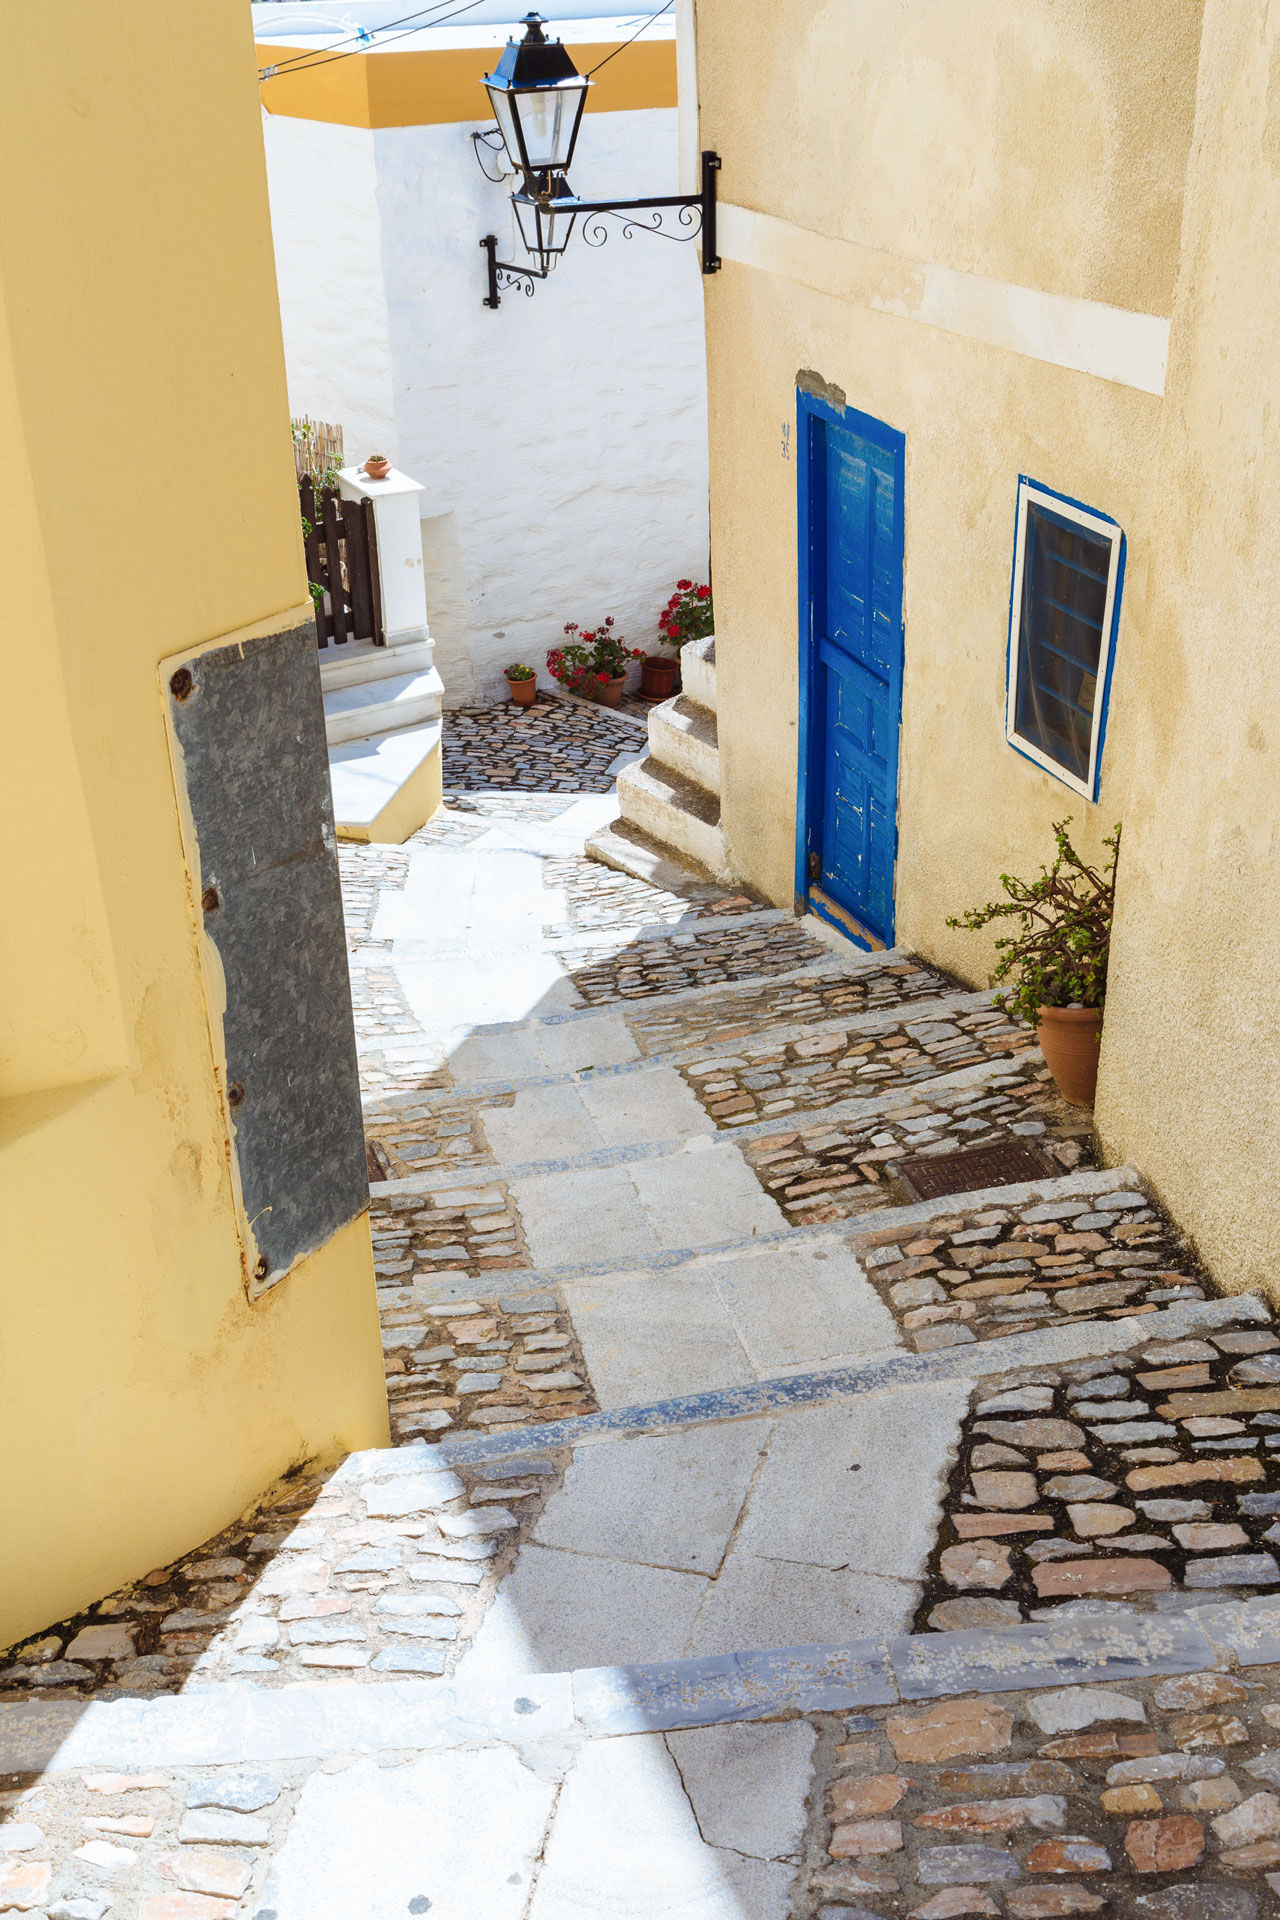 Ano Syros, a world of Cycladic architecture and Venetian charm